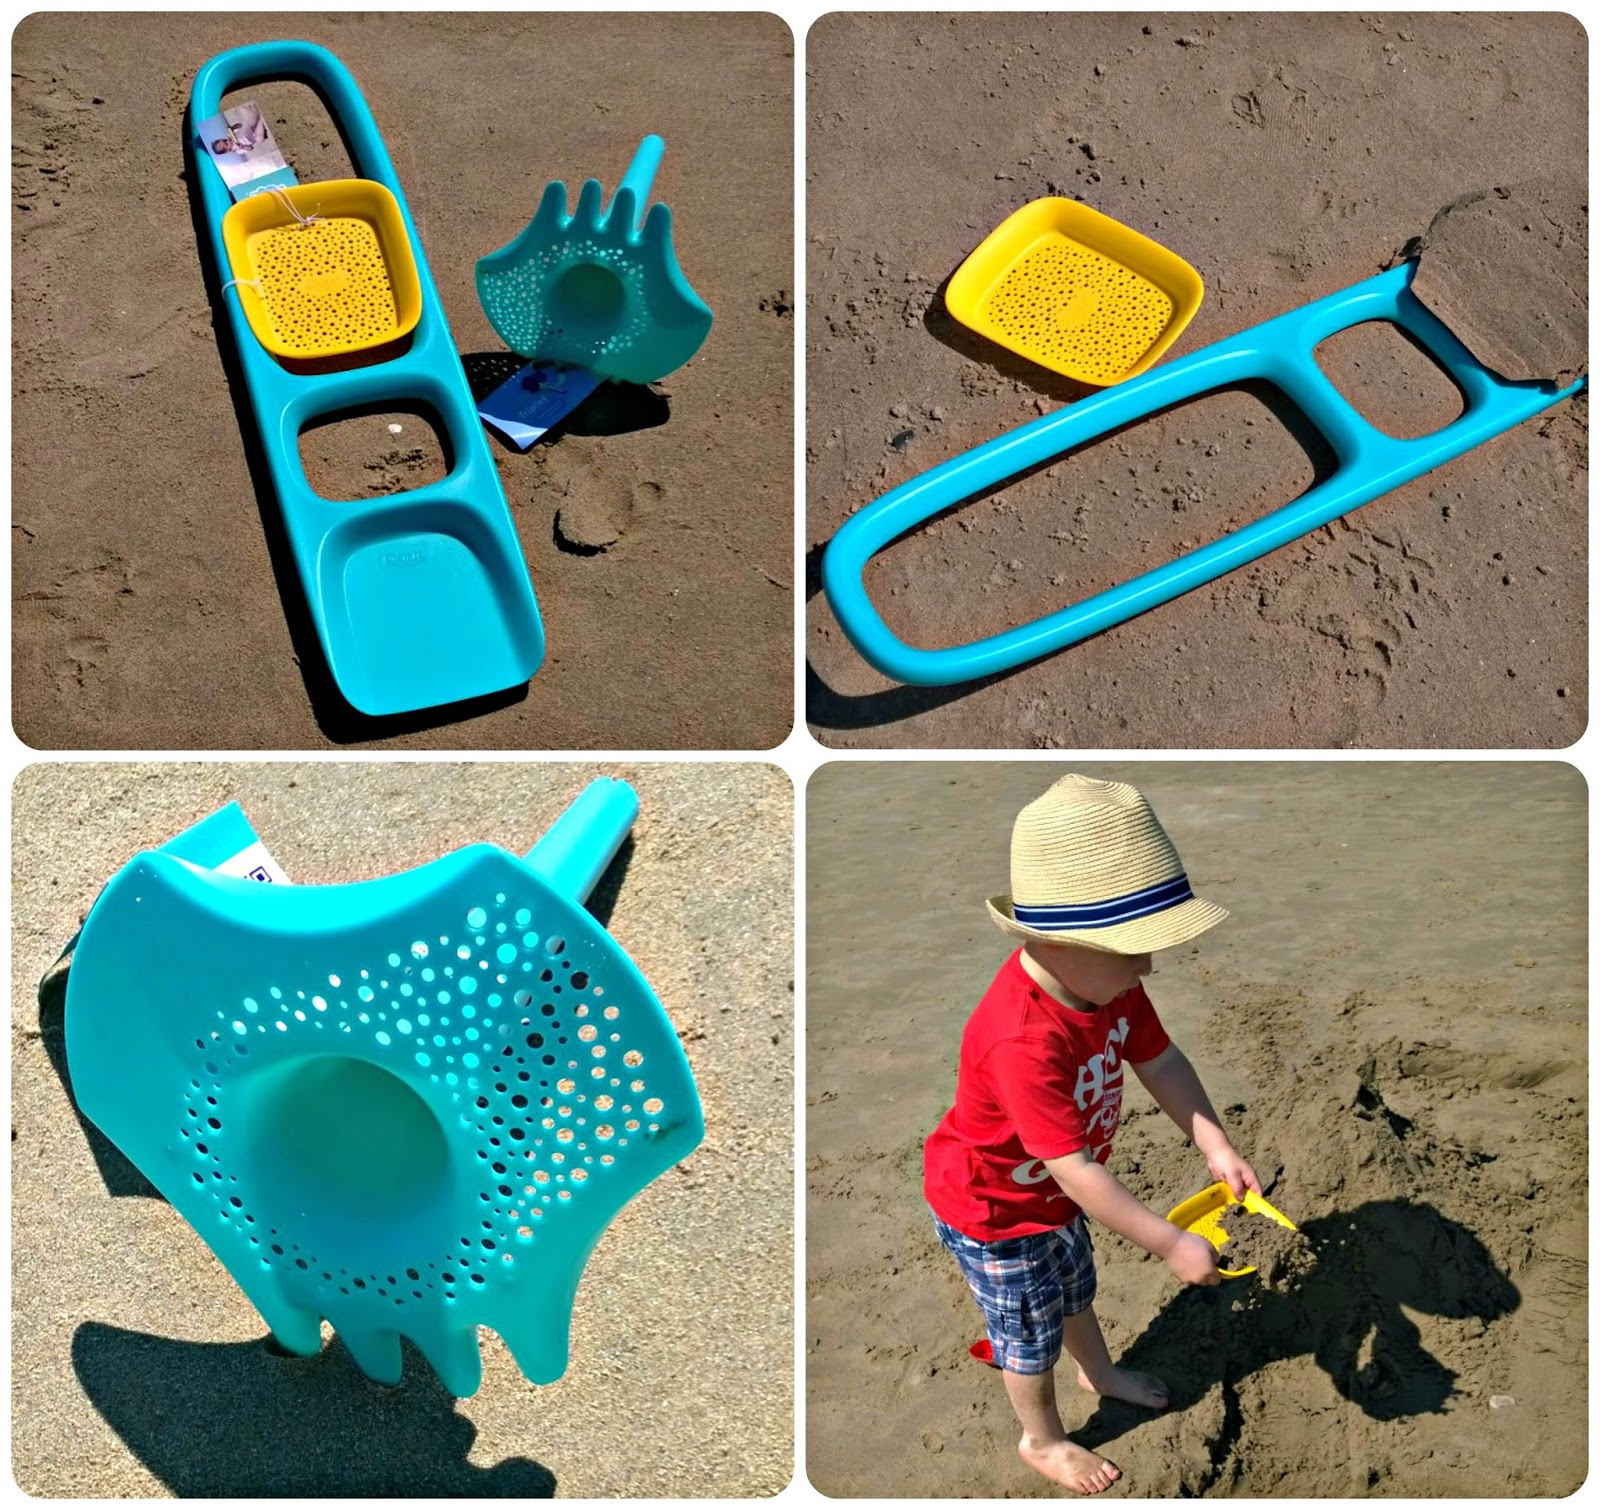 Quut Beach Toys scoopi and triplet